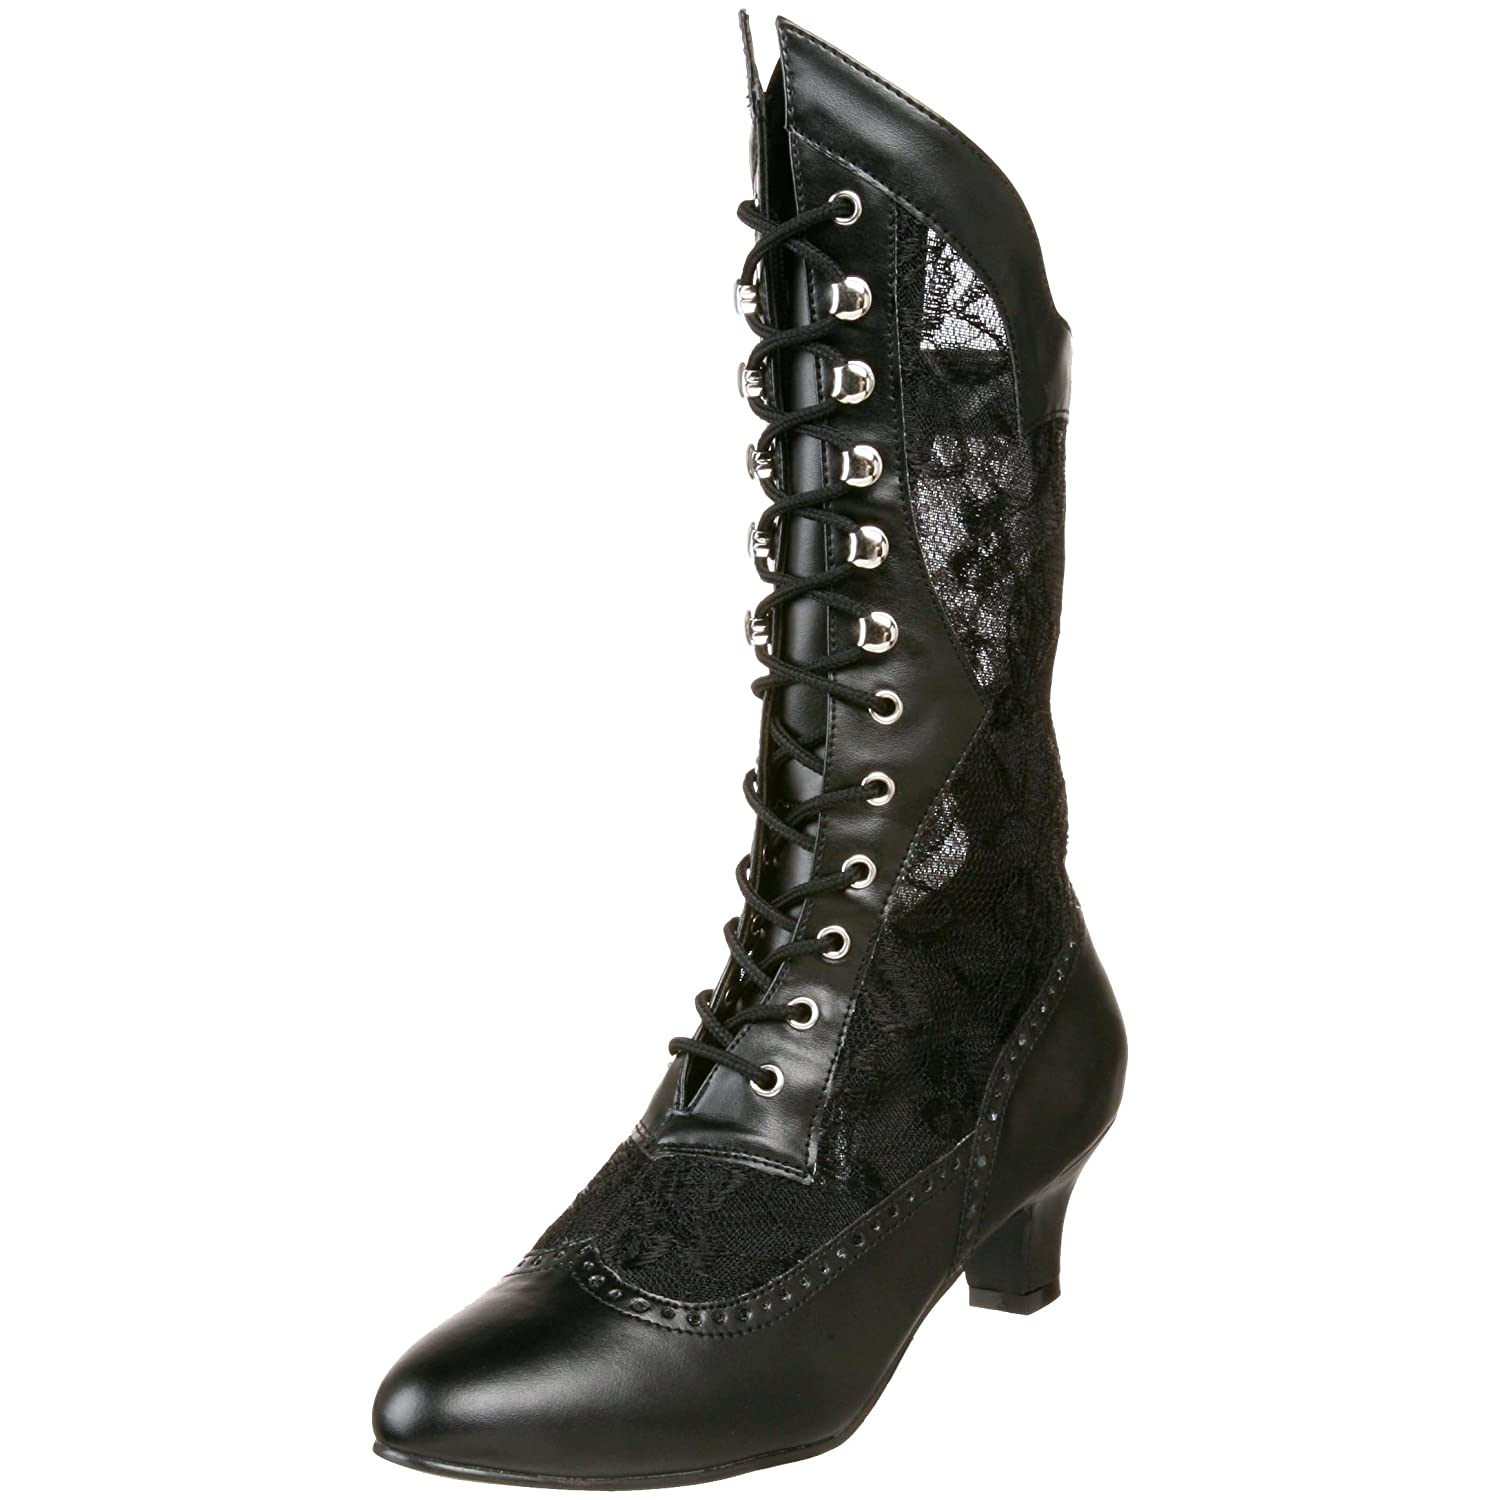 Steampunk Boots & Shoes, Heels & Flats Funtasma Dame115/B/Pu Women Warm Lining Ankle Boots £74.05 AT vintagedancer.com